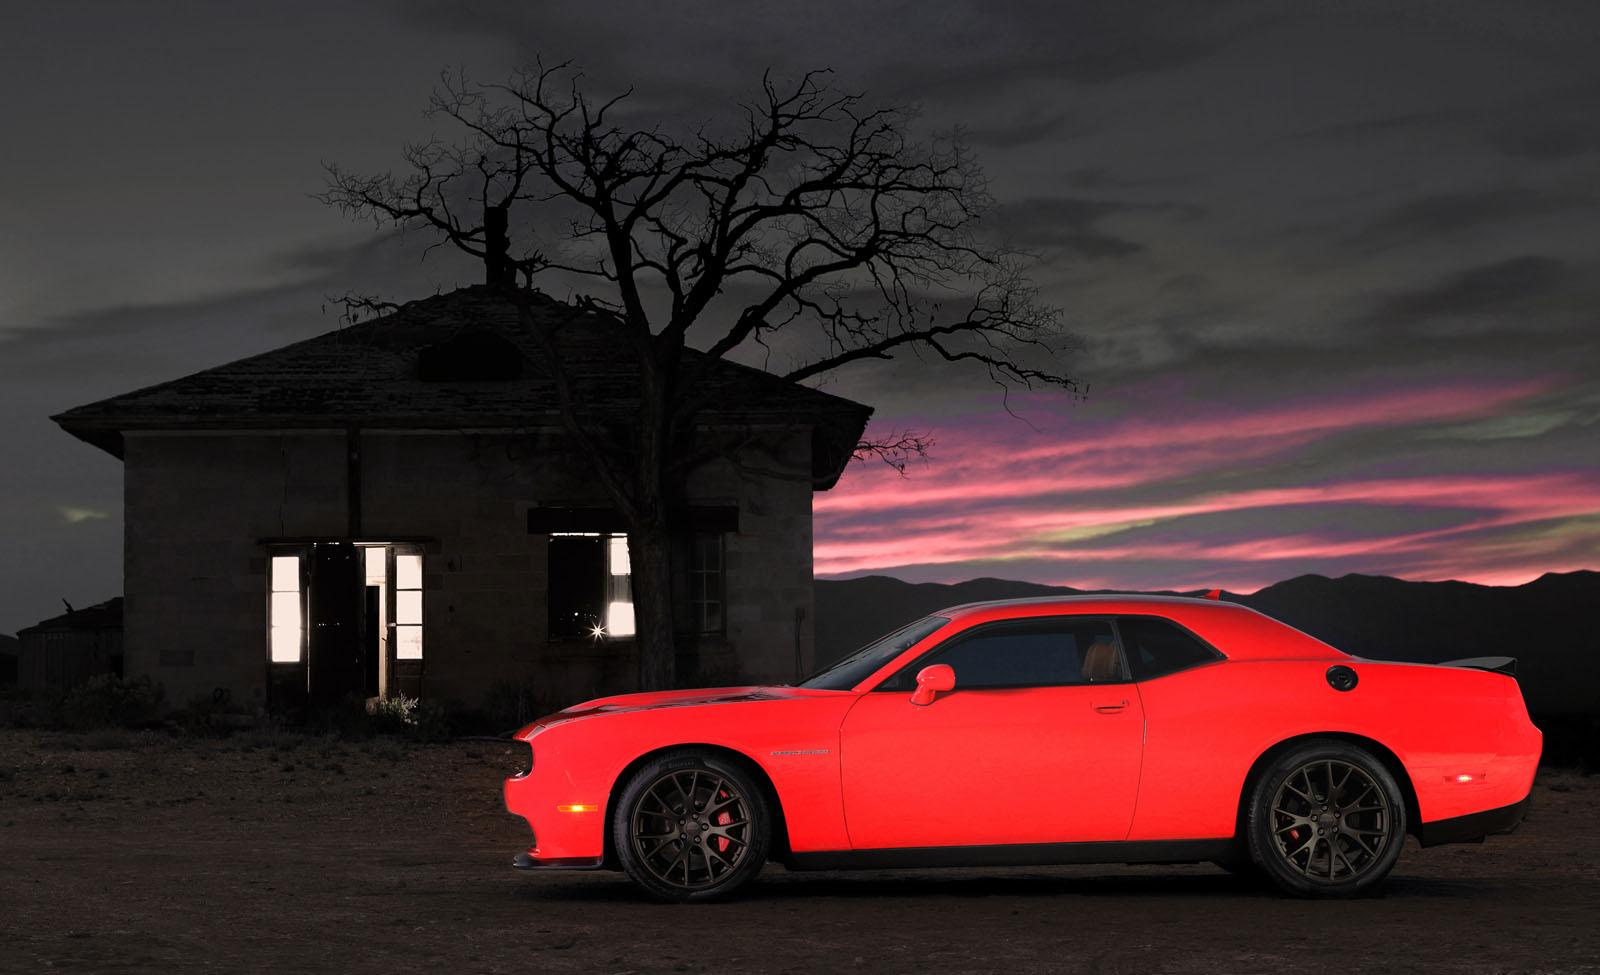 2015 Dodge Challenger SRT8 Hellcat wallpaper 1 Sense The Car 1600x975